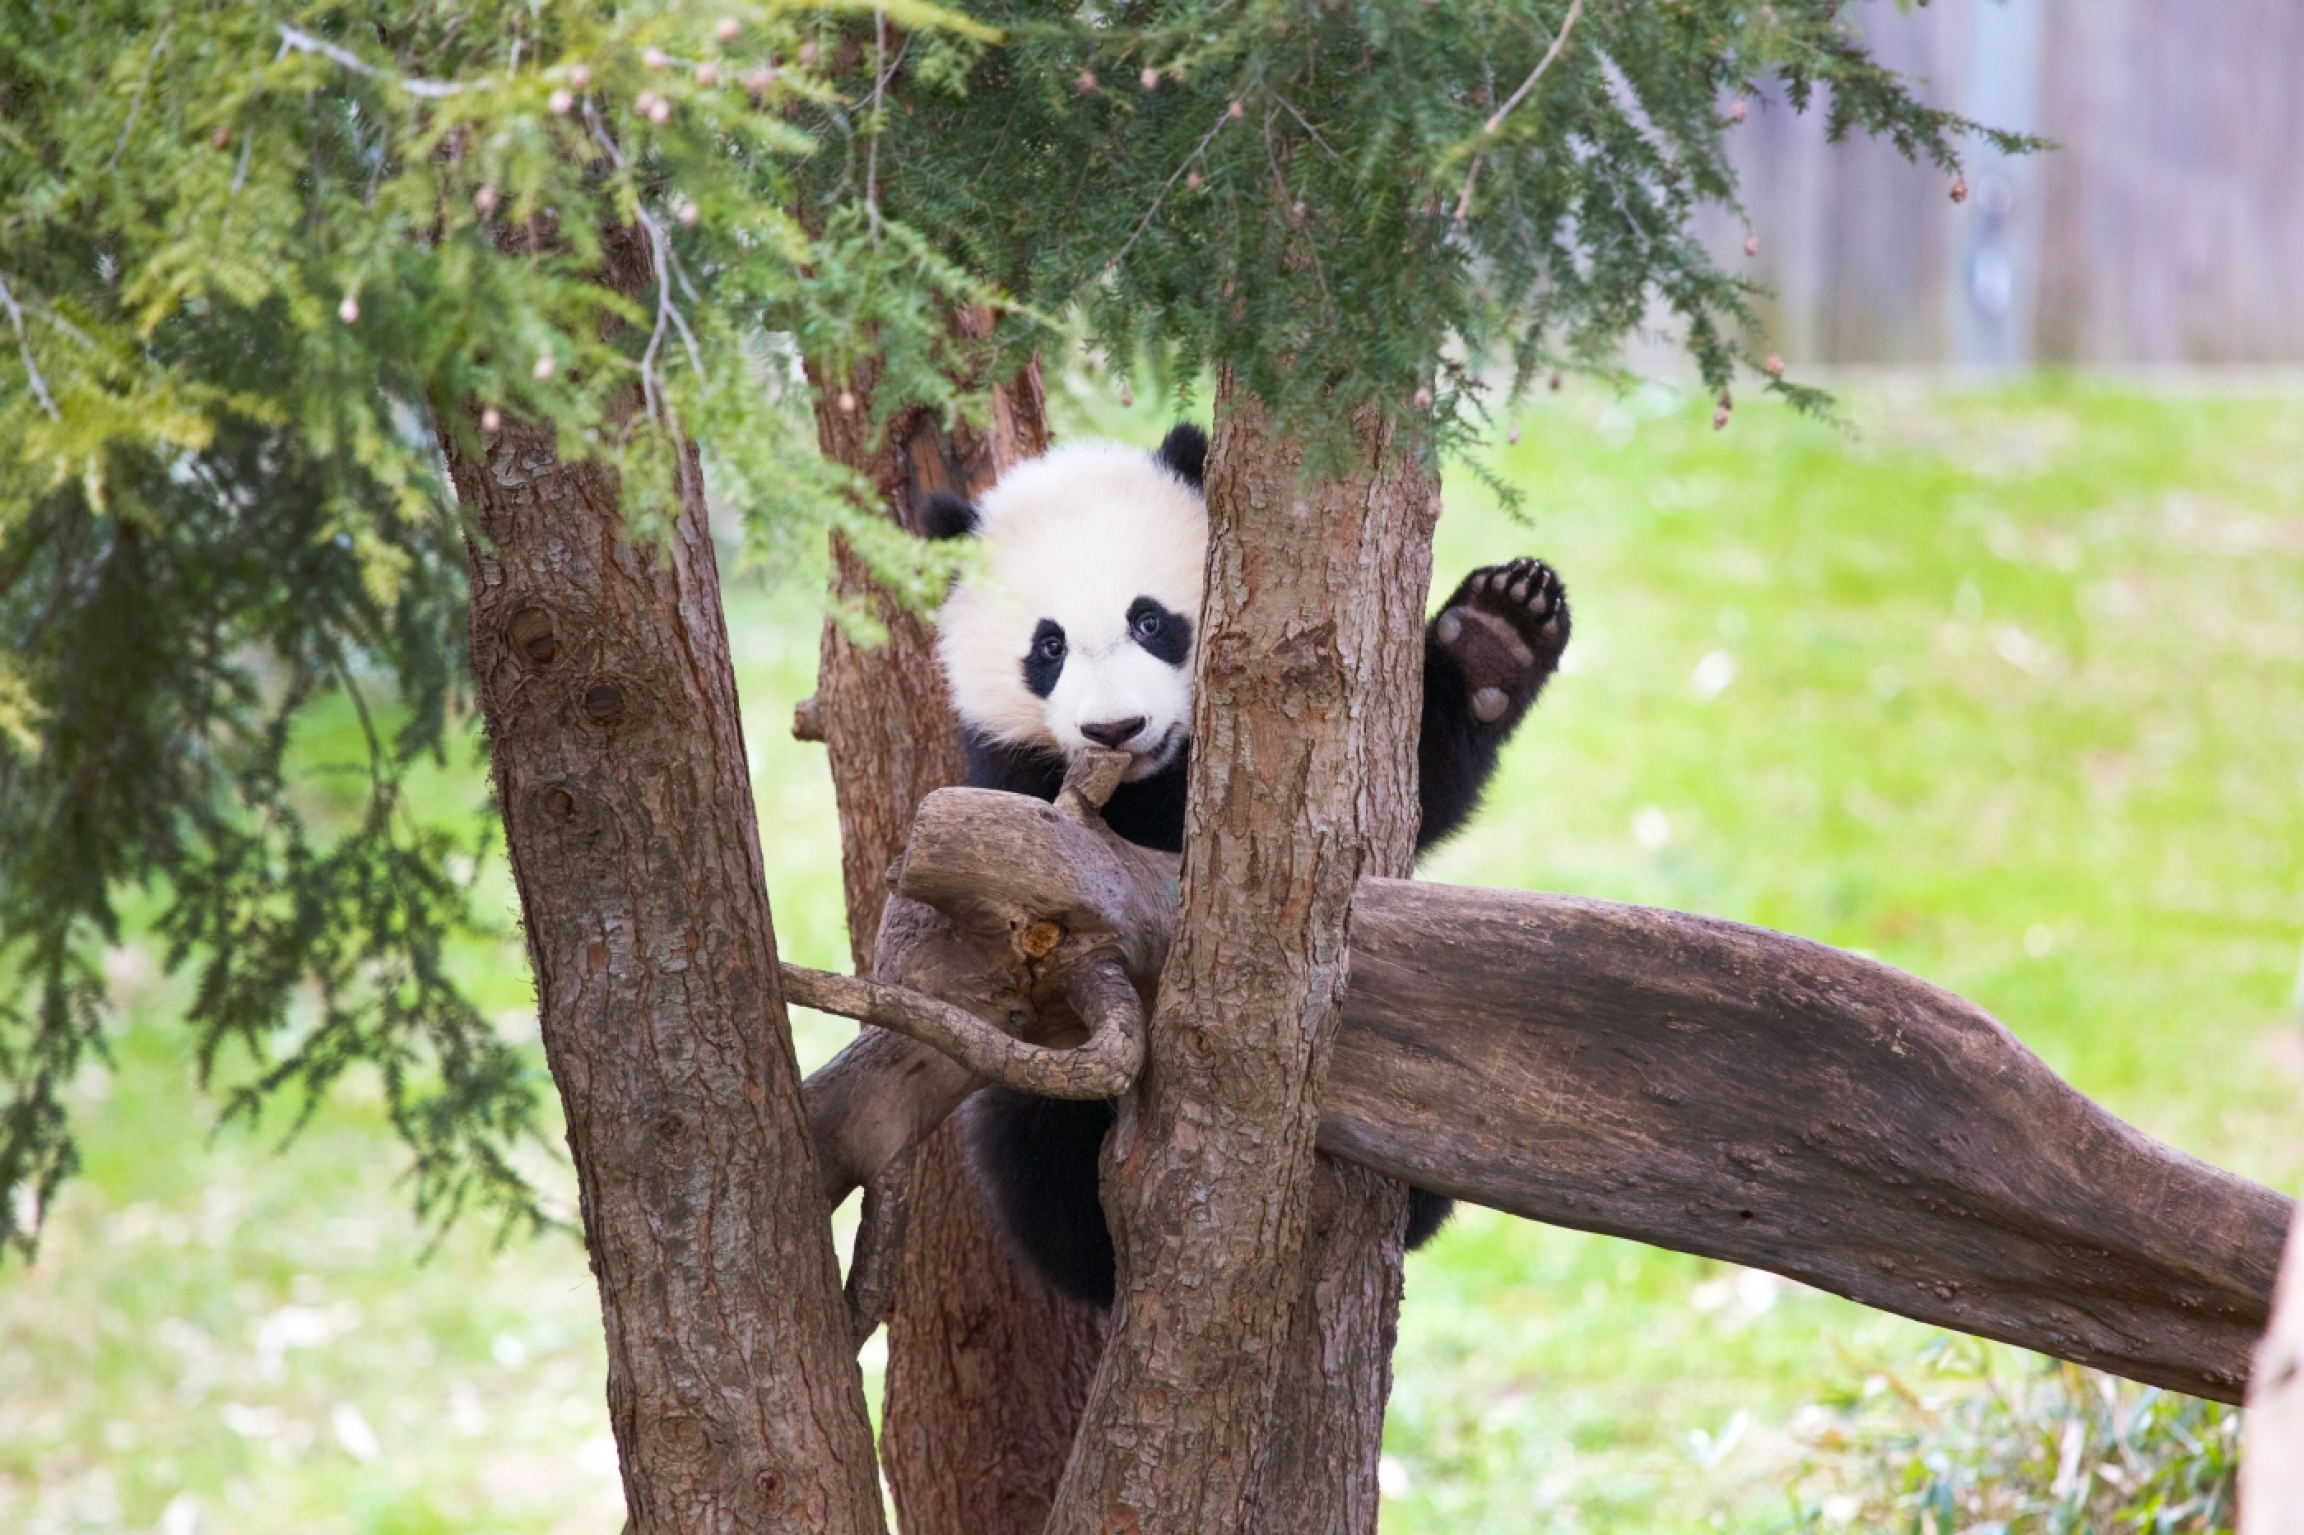 Black and white panda in a tree and waves his paw like he's waving goodbye